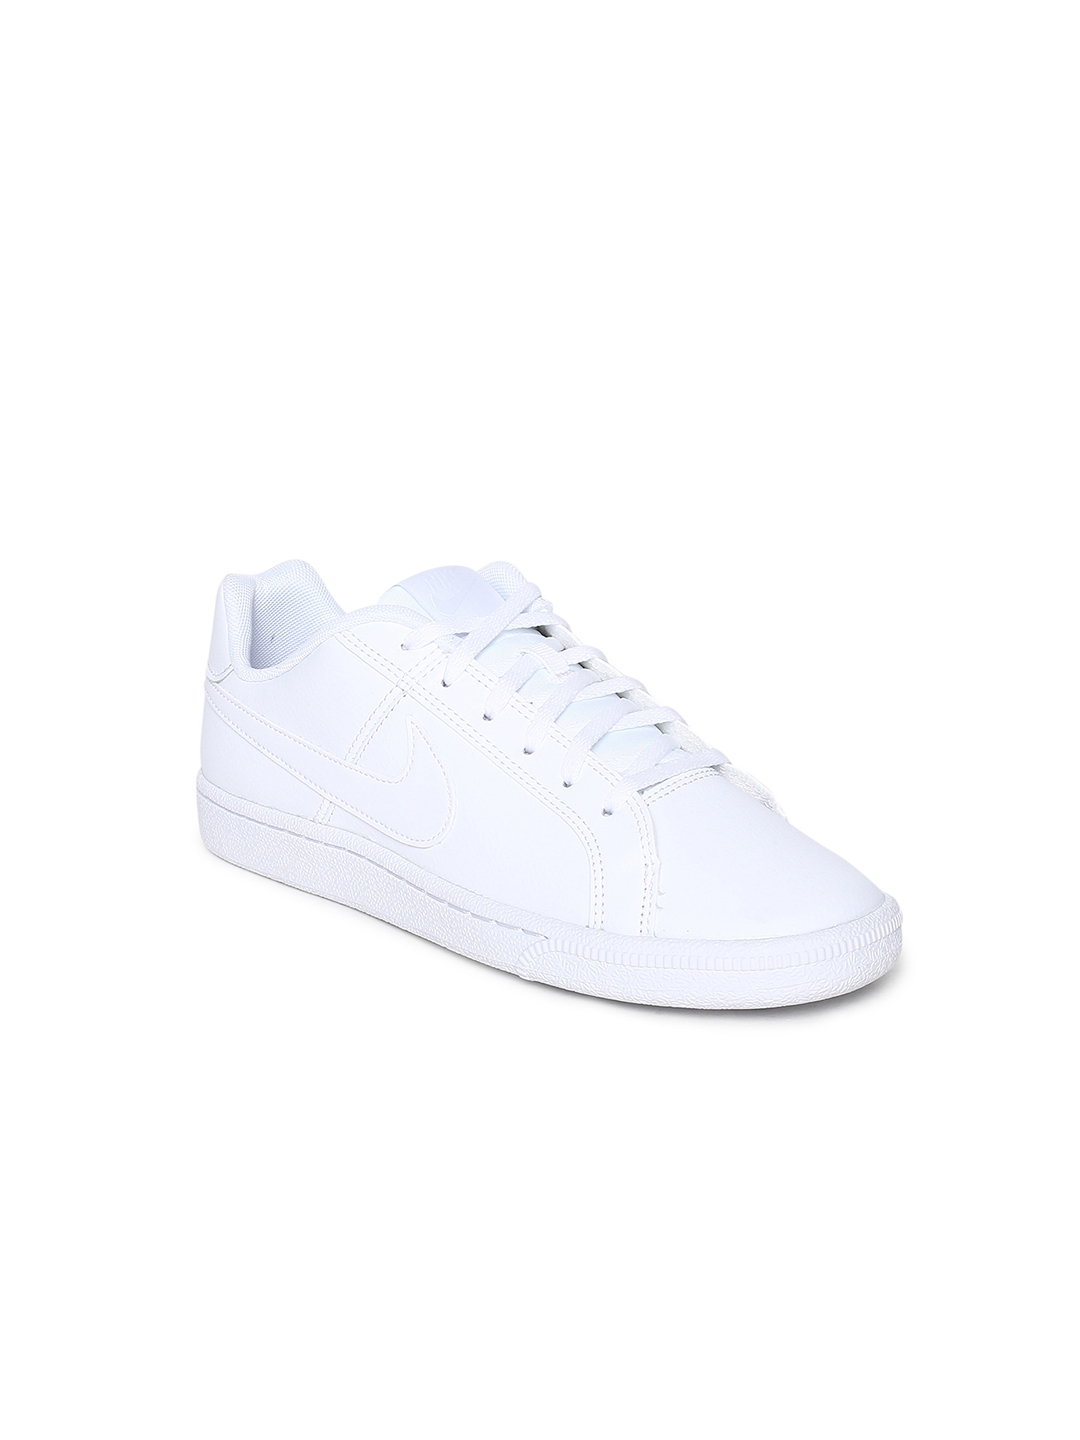 Nike Boys White Court Royale (GS) Sneakers